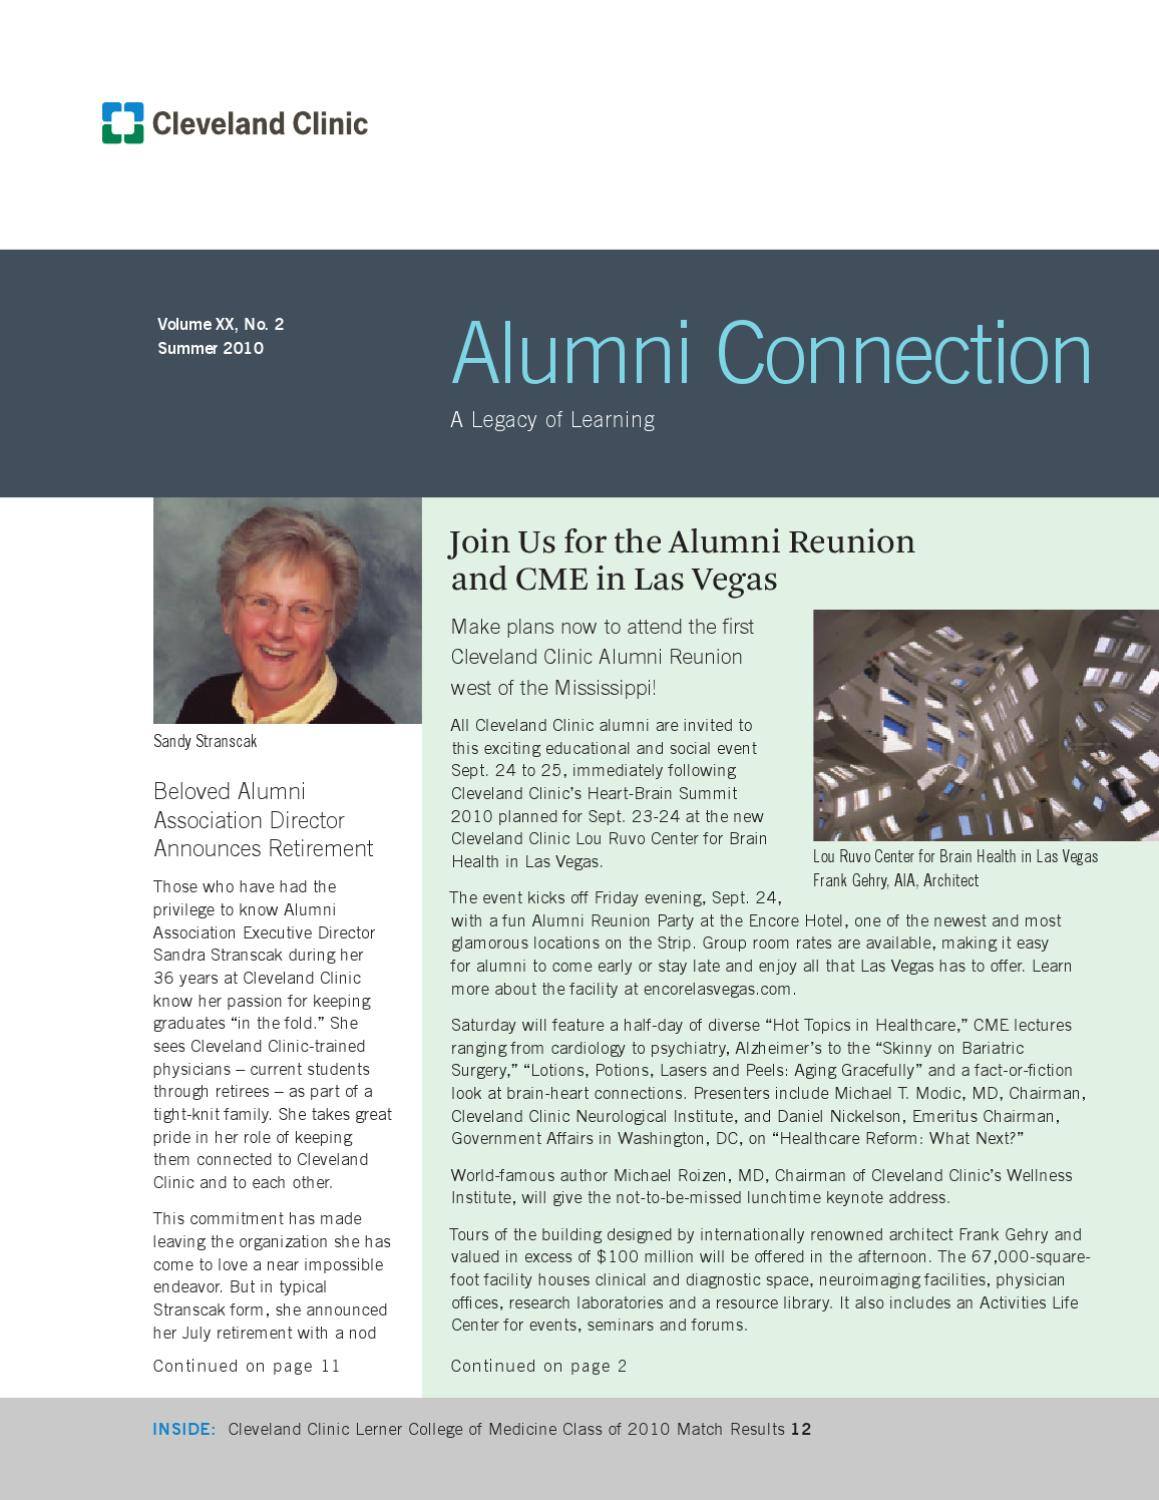 Cleveland Clinic Alumni Connection - Vol  XX No  2 by